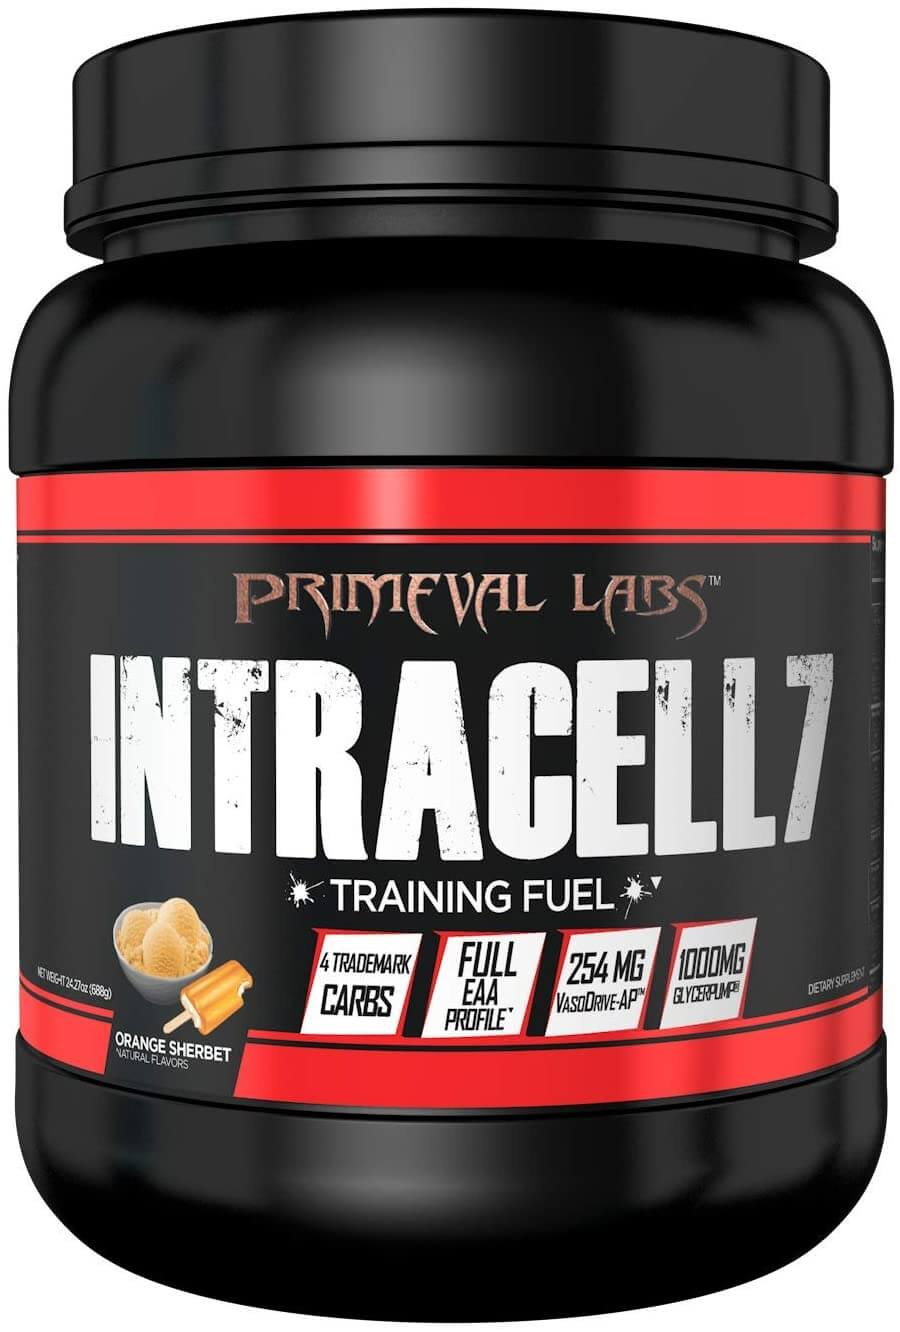 INTRACELL 7 Black Review: Does This Intra Fuel Your Workout?